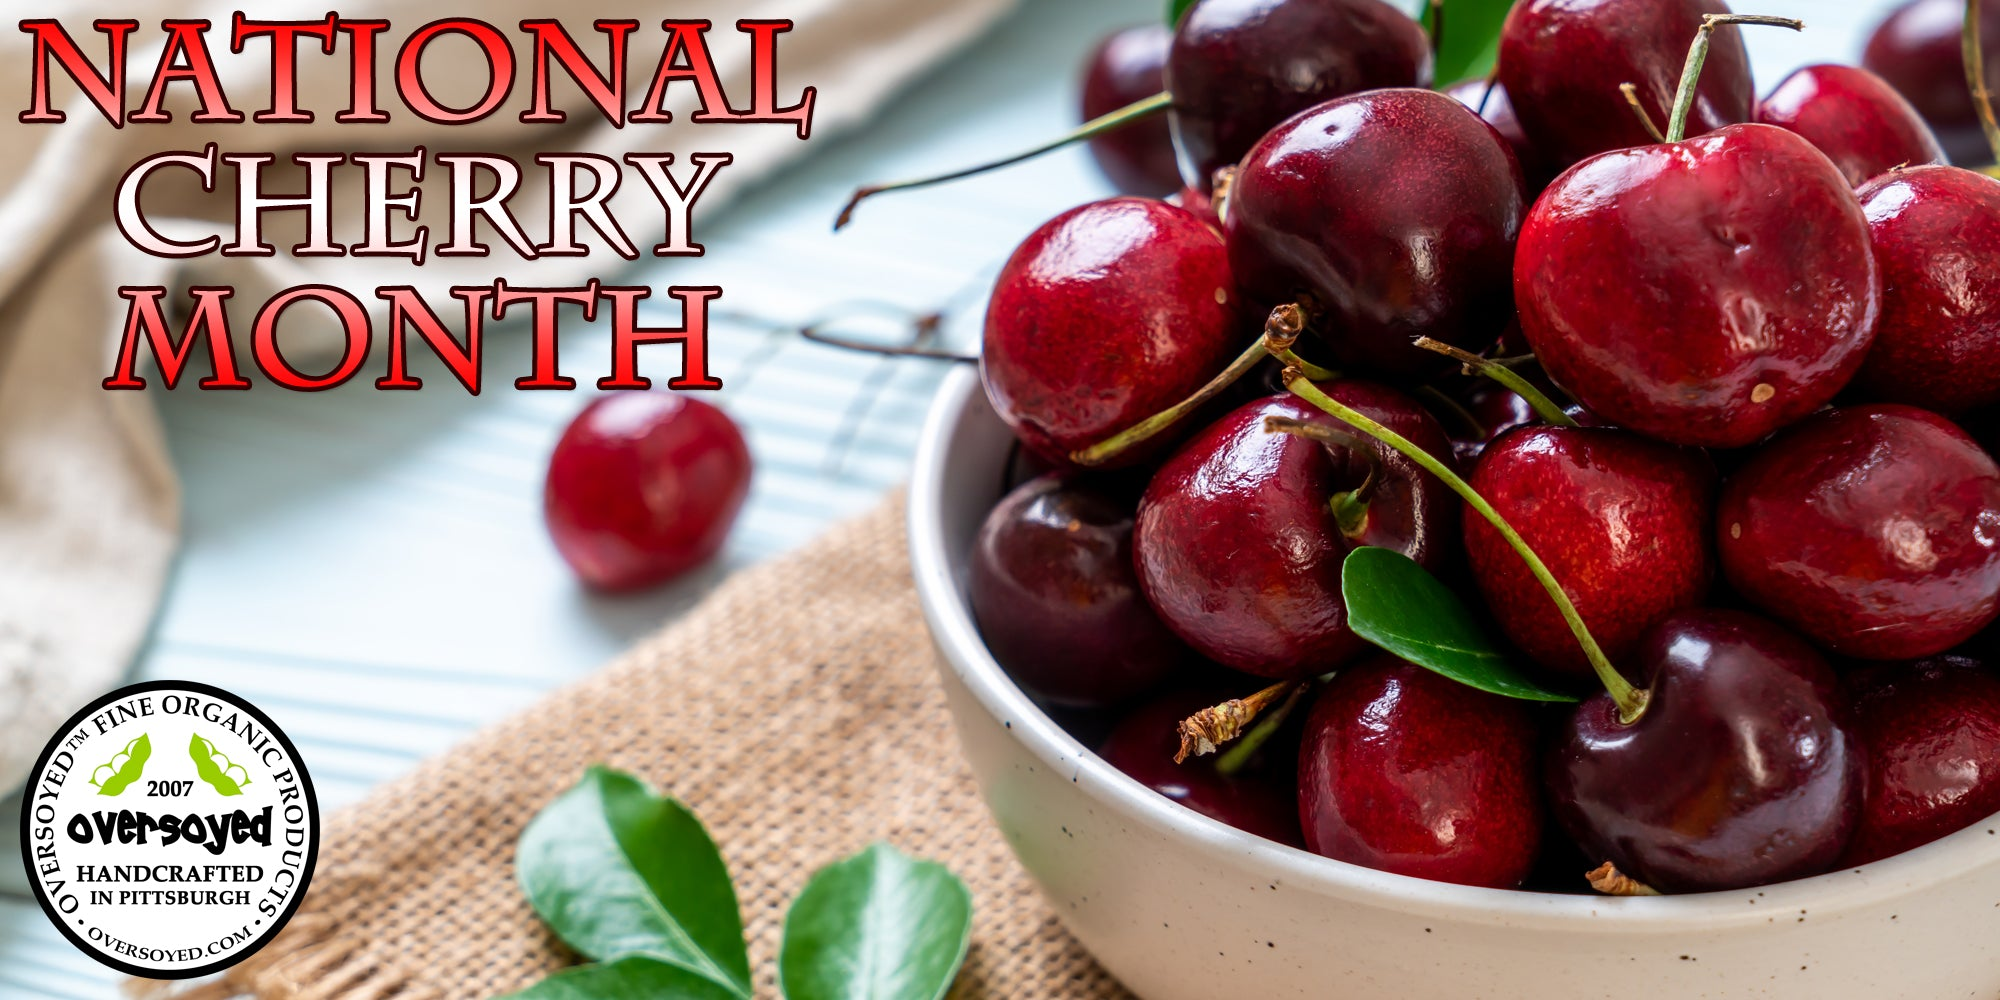 OverSoyed Fine Organic Products - National Cherry Month